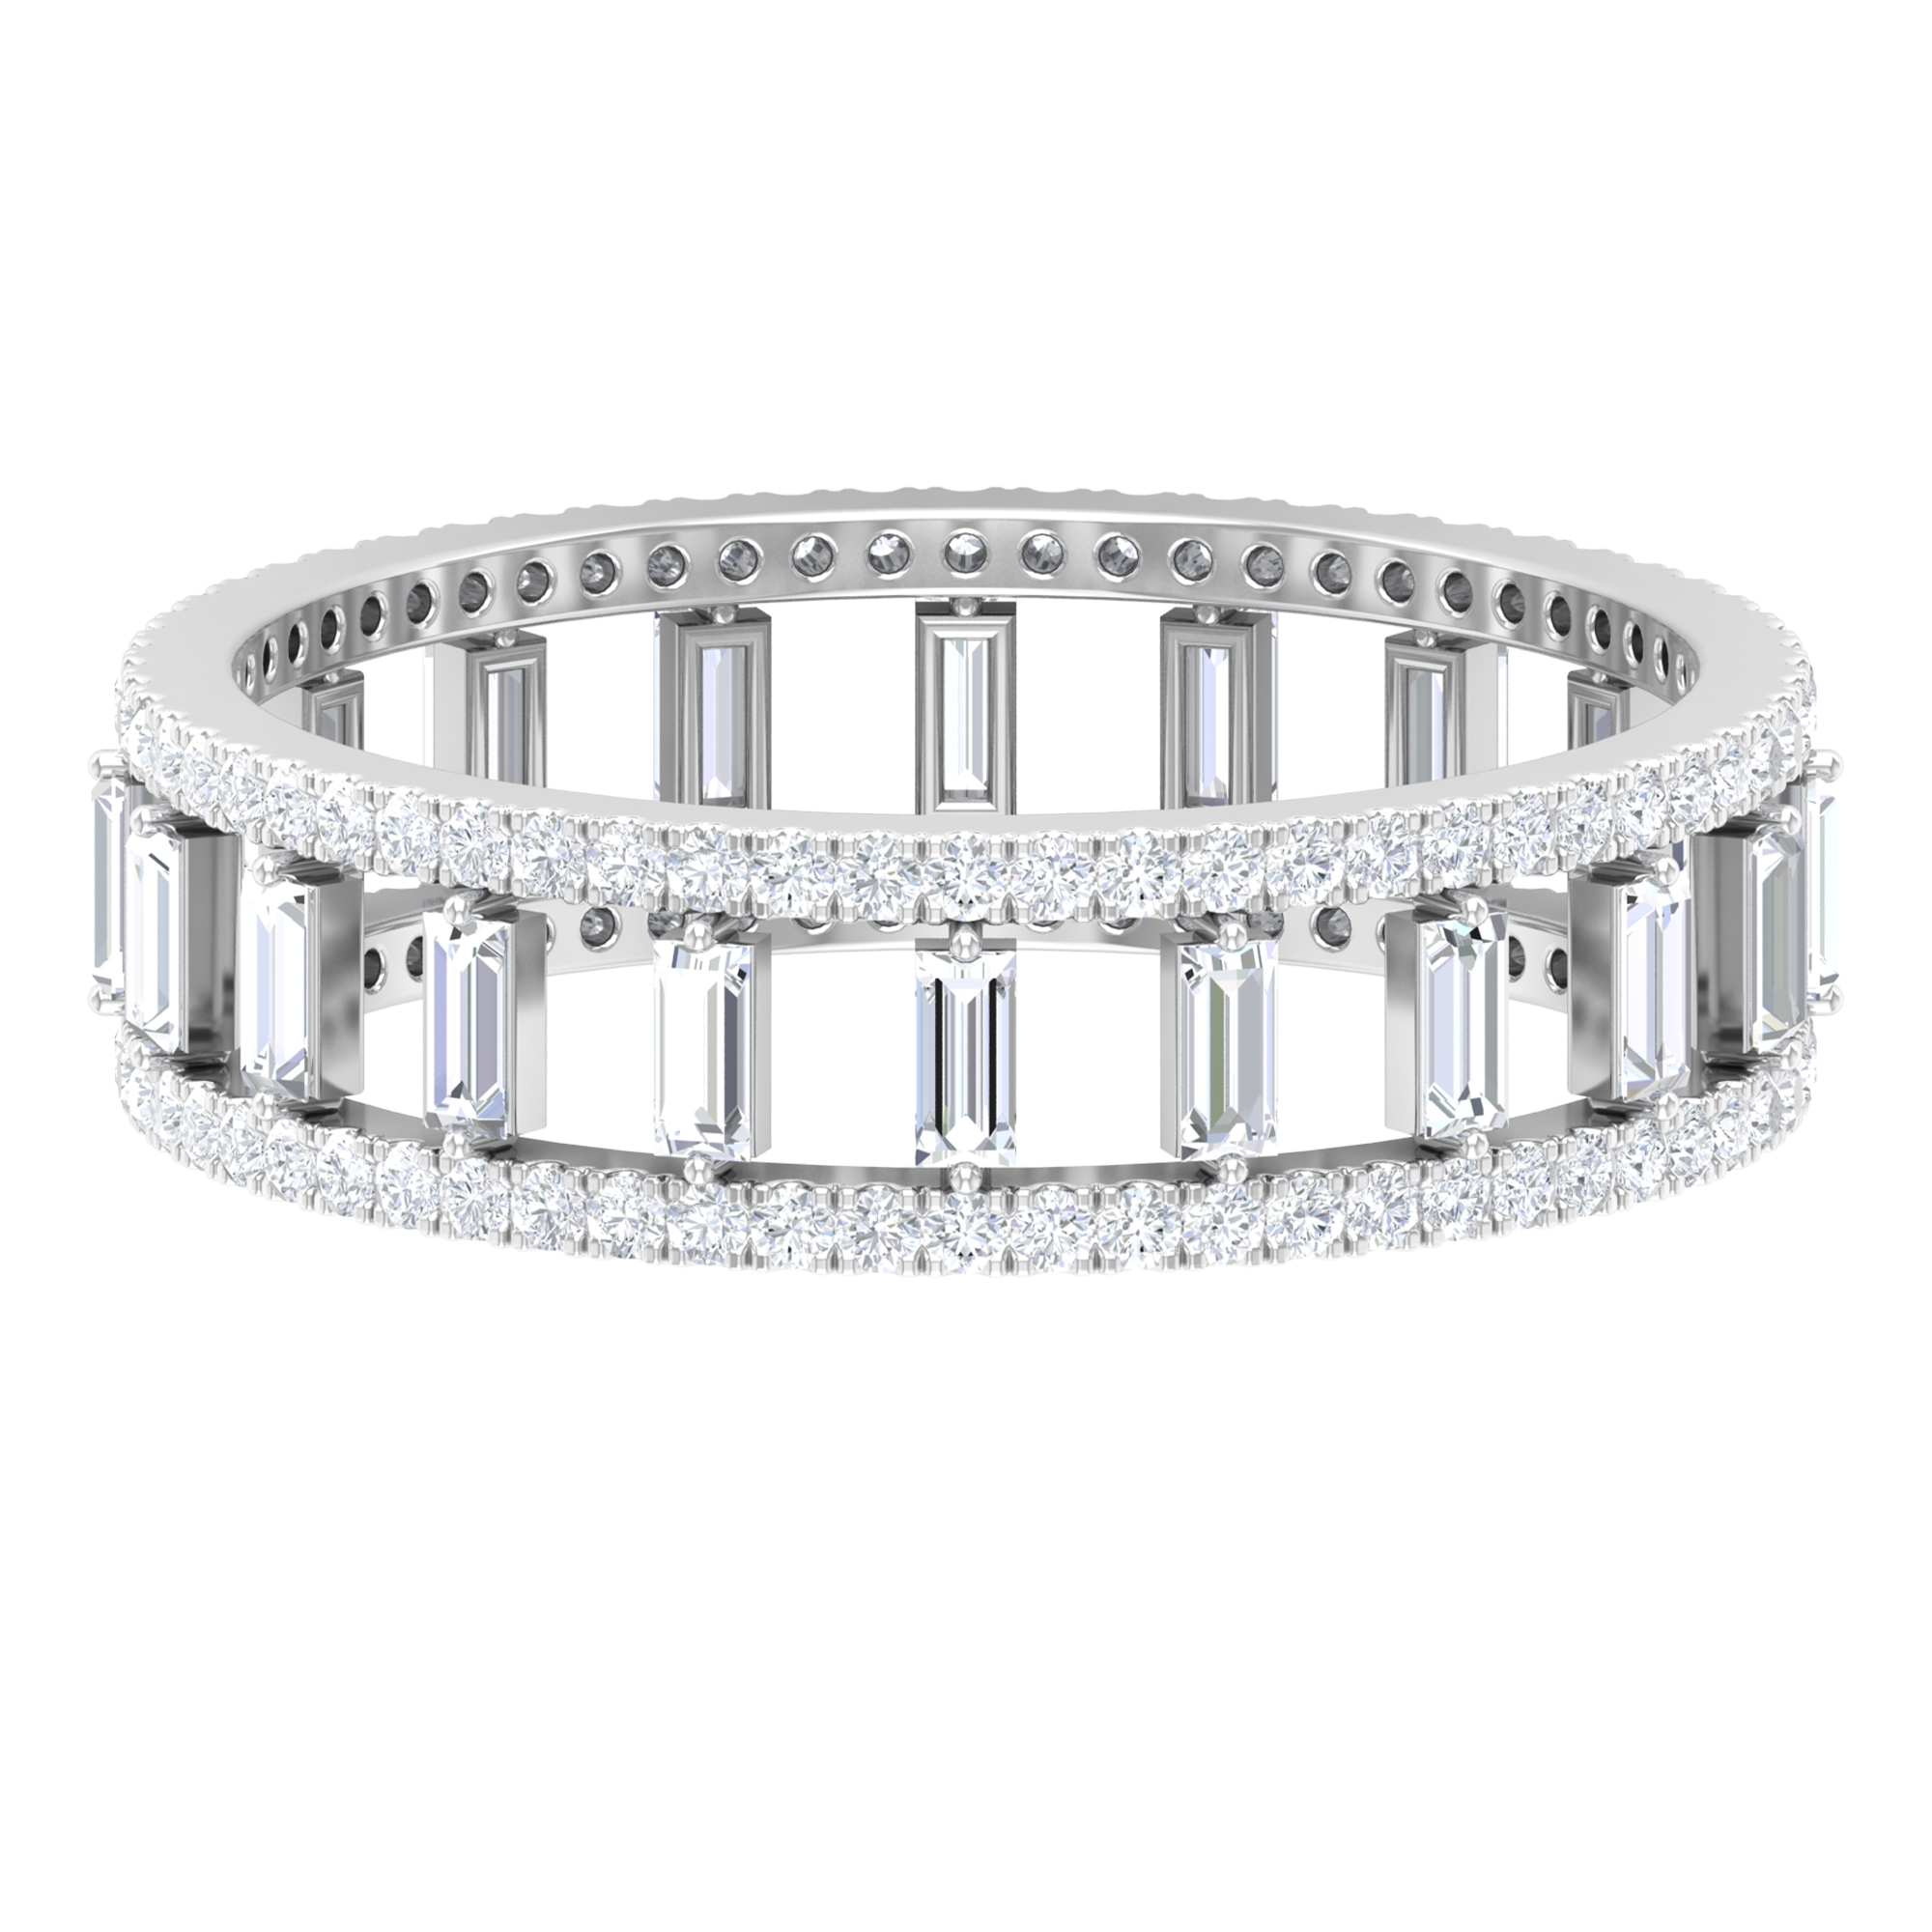 1 CT Baguette and Round Cut Diamond Classic Band Ring in Prong Setting